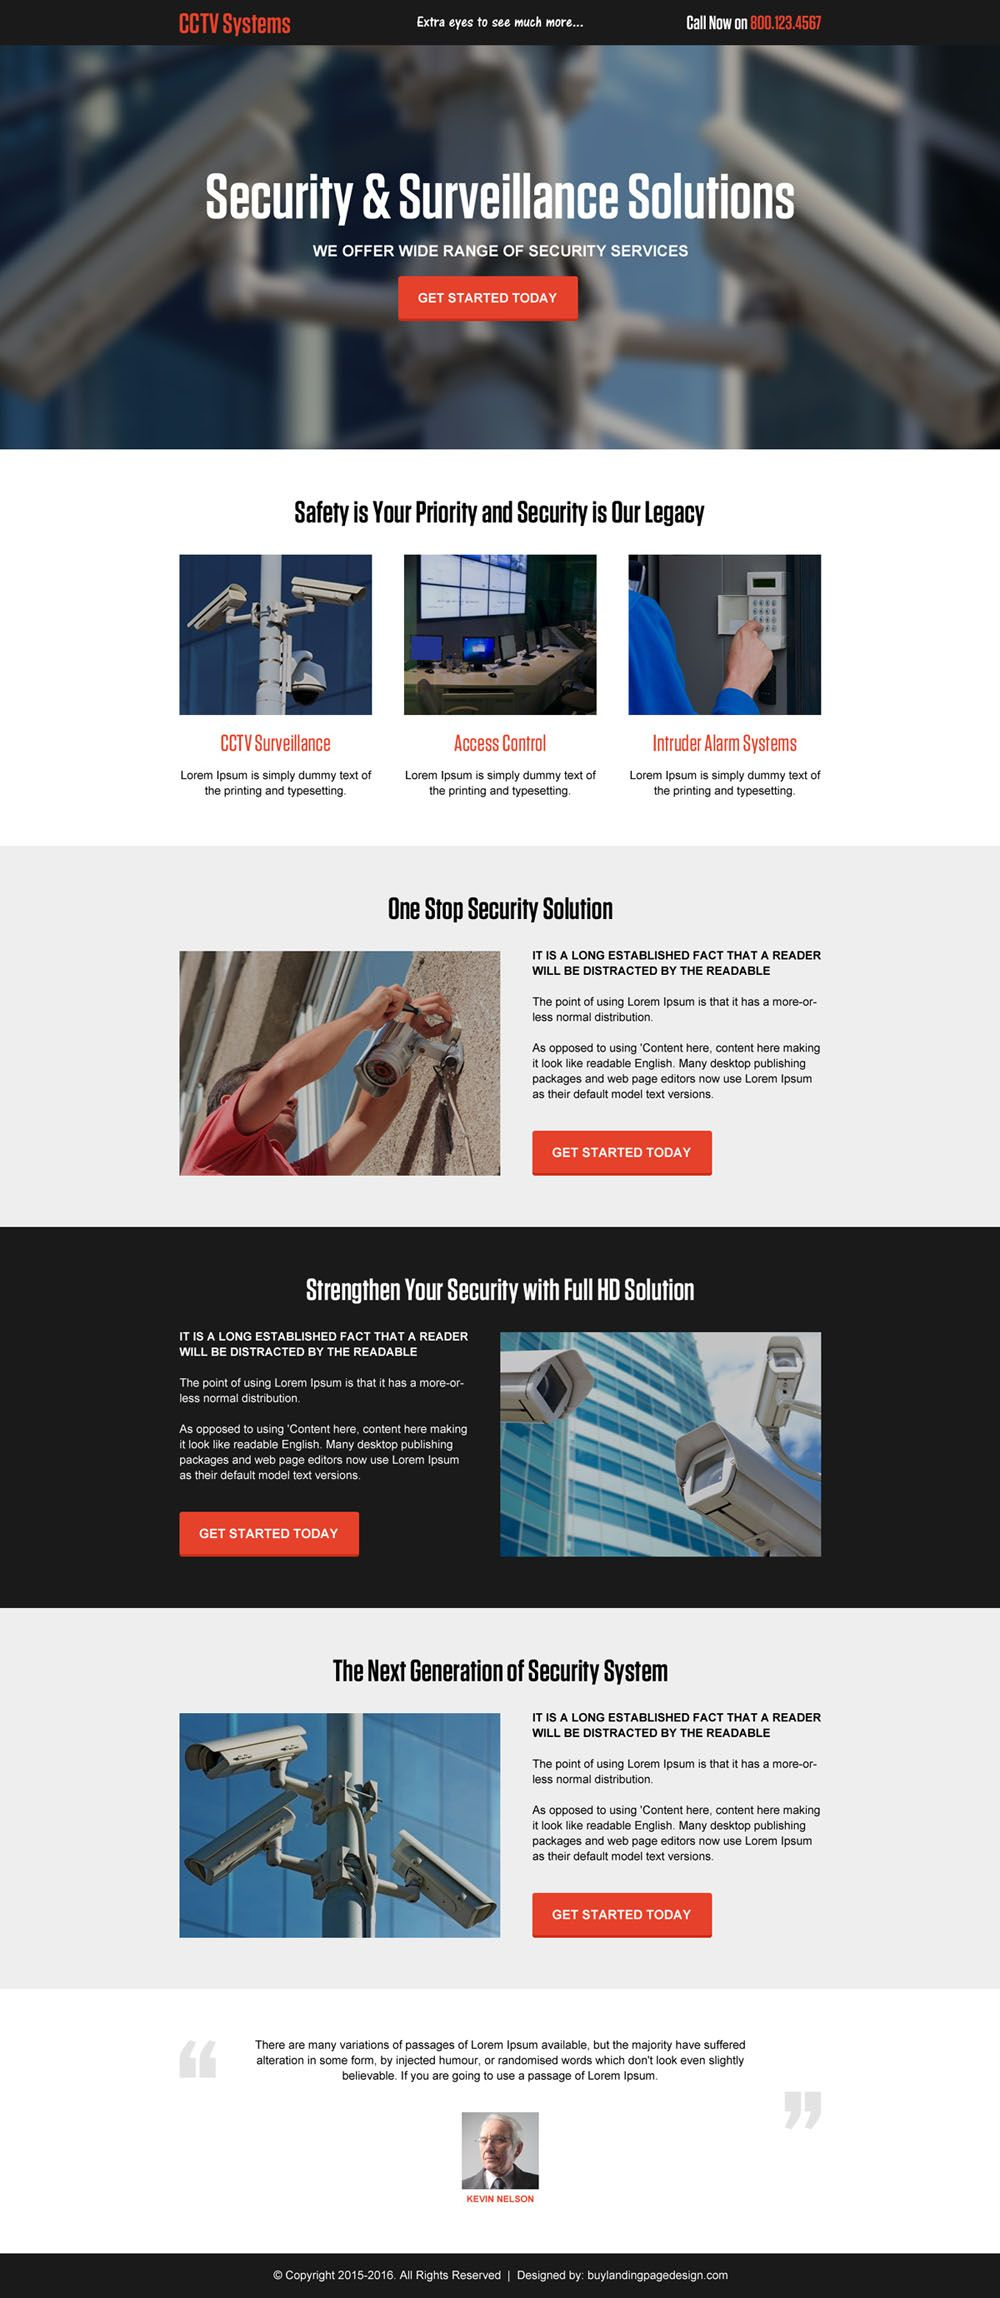 Cctv Security System Solutions Res Lp 005 Security Responsive Landing Page Design Preview Home Security Systems Wireless Home Security Systems Home Security